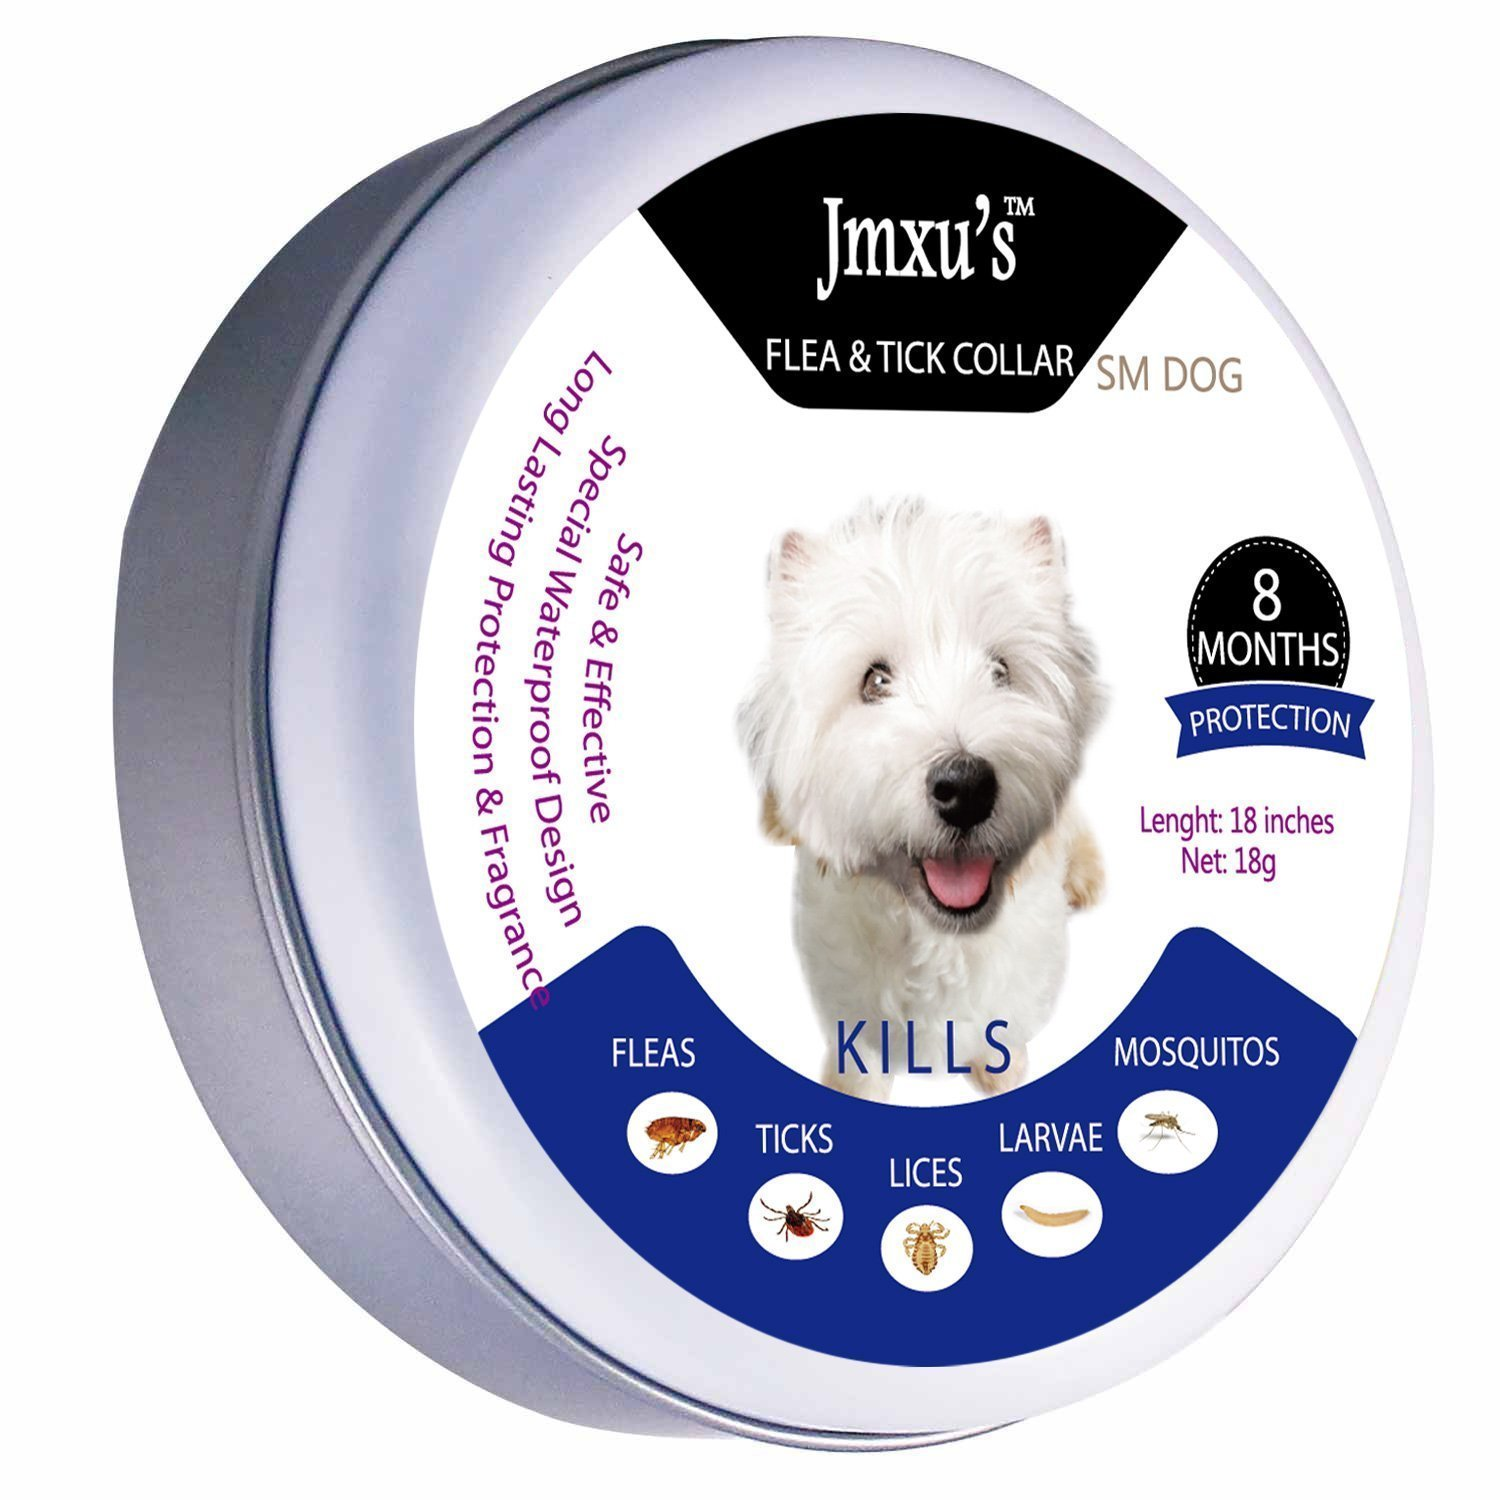 Jmxu's Flea & Tick Prevention for Dogs and Cats, Flea and Tick collar for Dogs and Cats, 18 inches, fits for small dogs, ALLERGY FREE, 8 MONTH PROTECTION